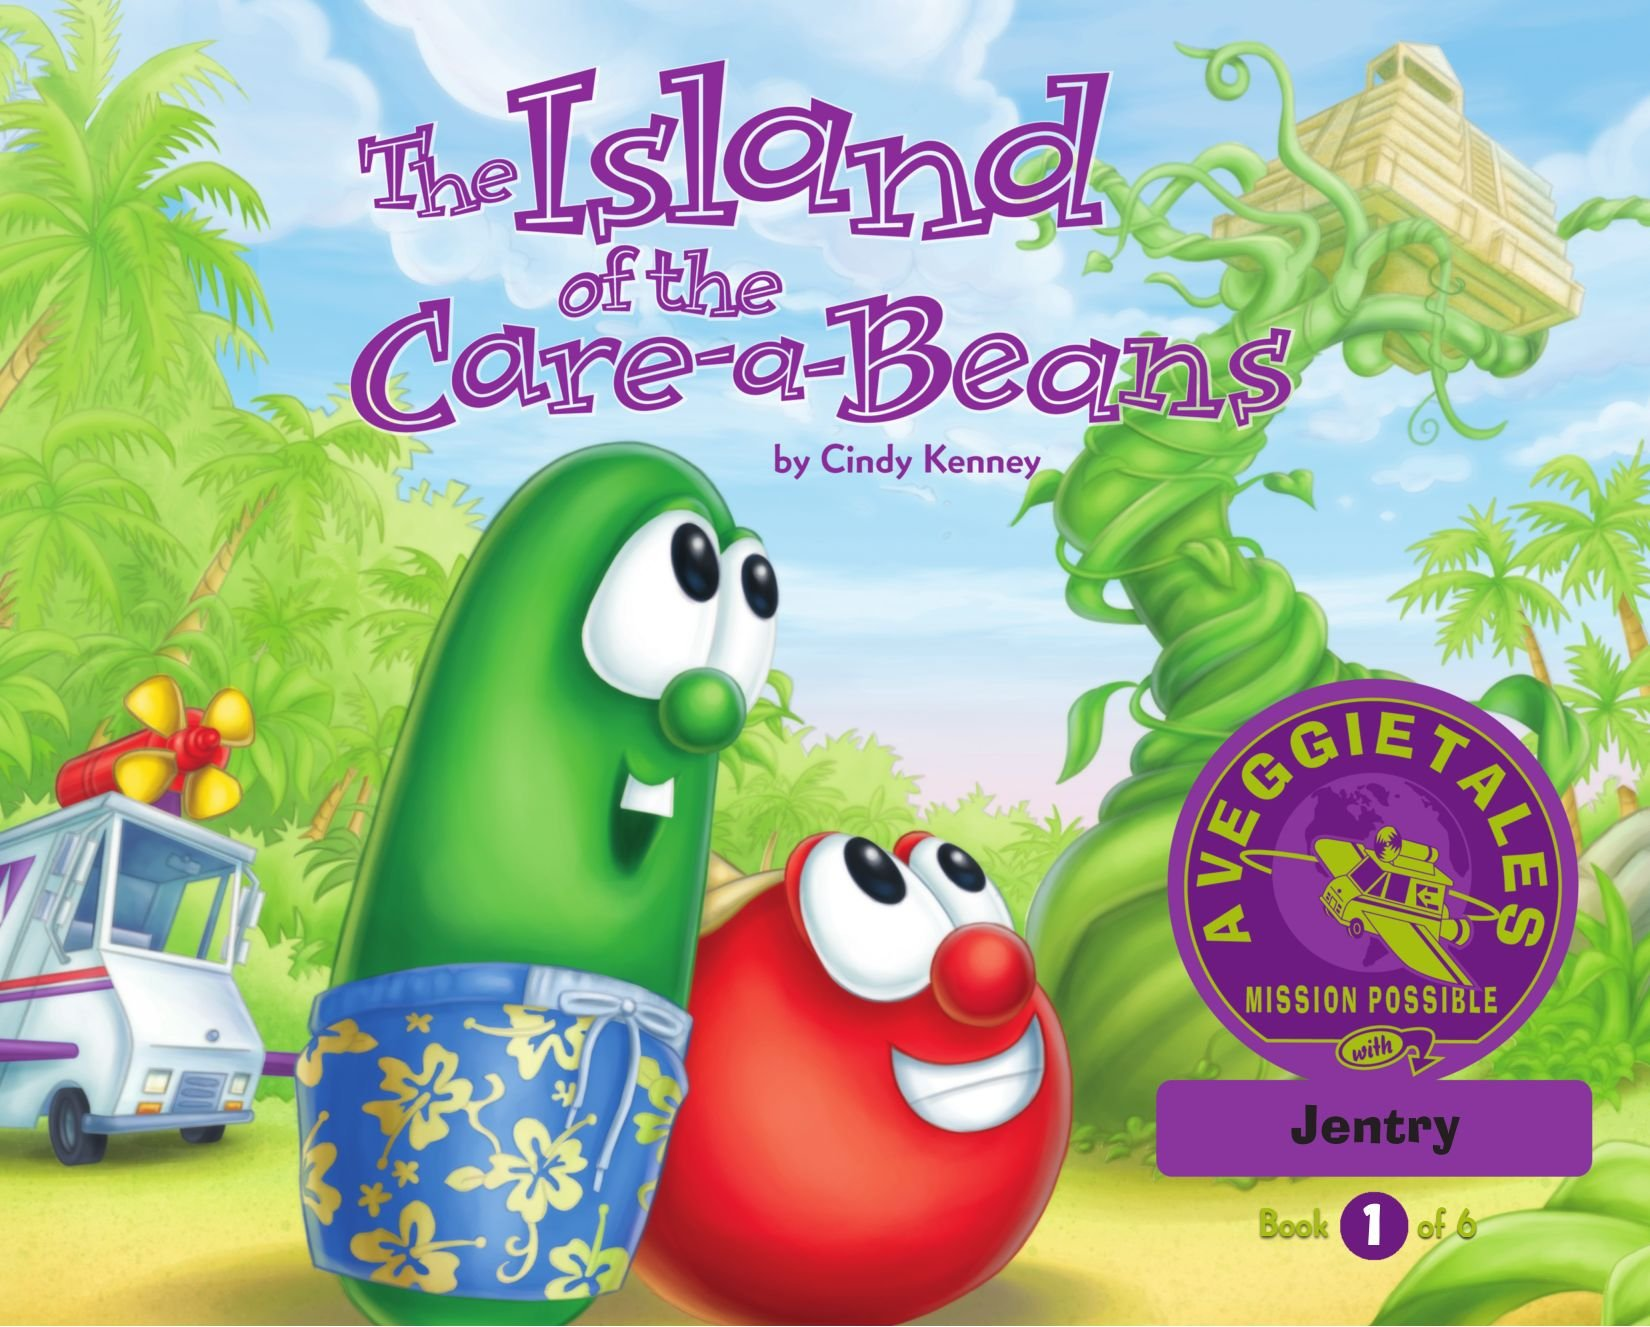 The Island of the Care-a-Beans - VeggieTales Mission Possible Adventure Series #1: Personalized for Jentry (Boy) PDF